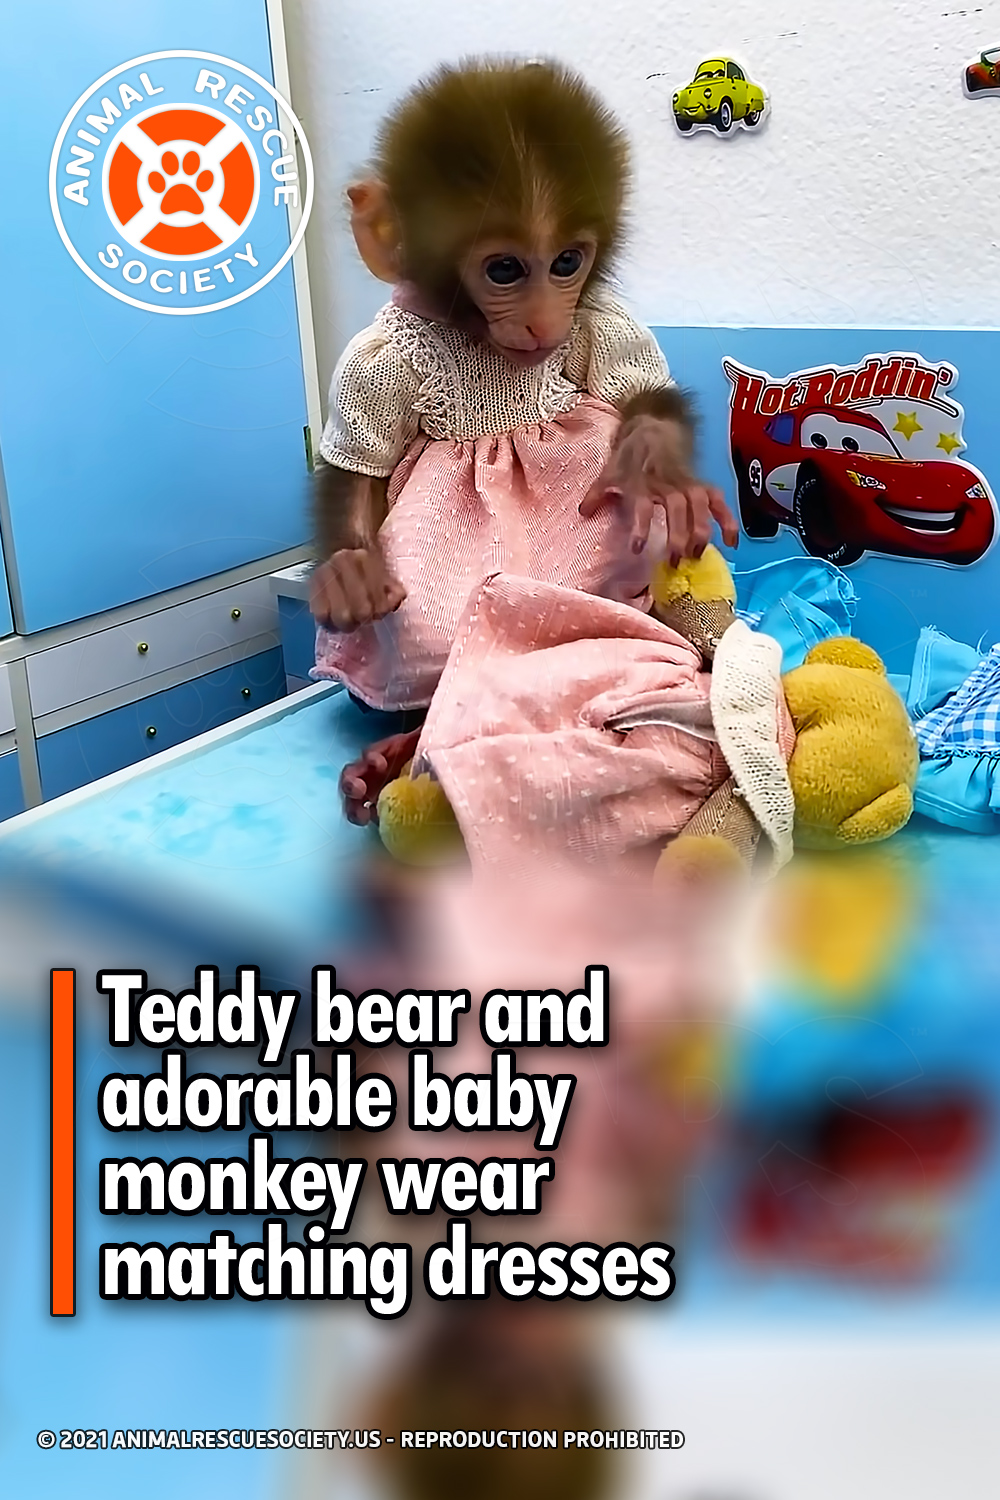 Teddy bear and adorable baby monkey wear matching dresses